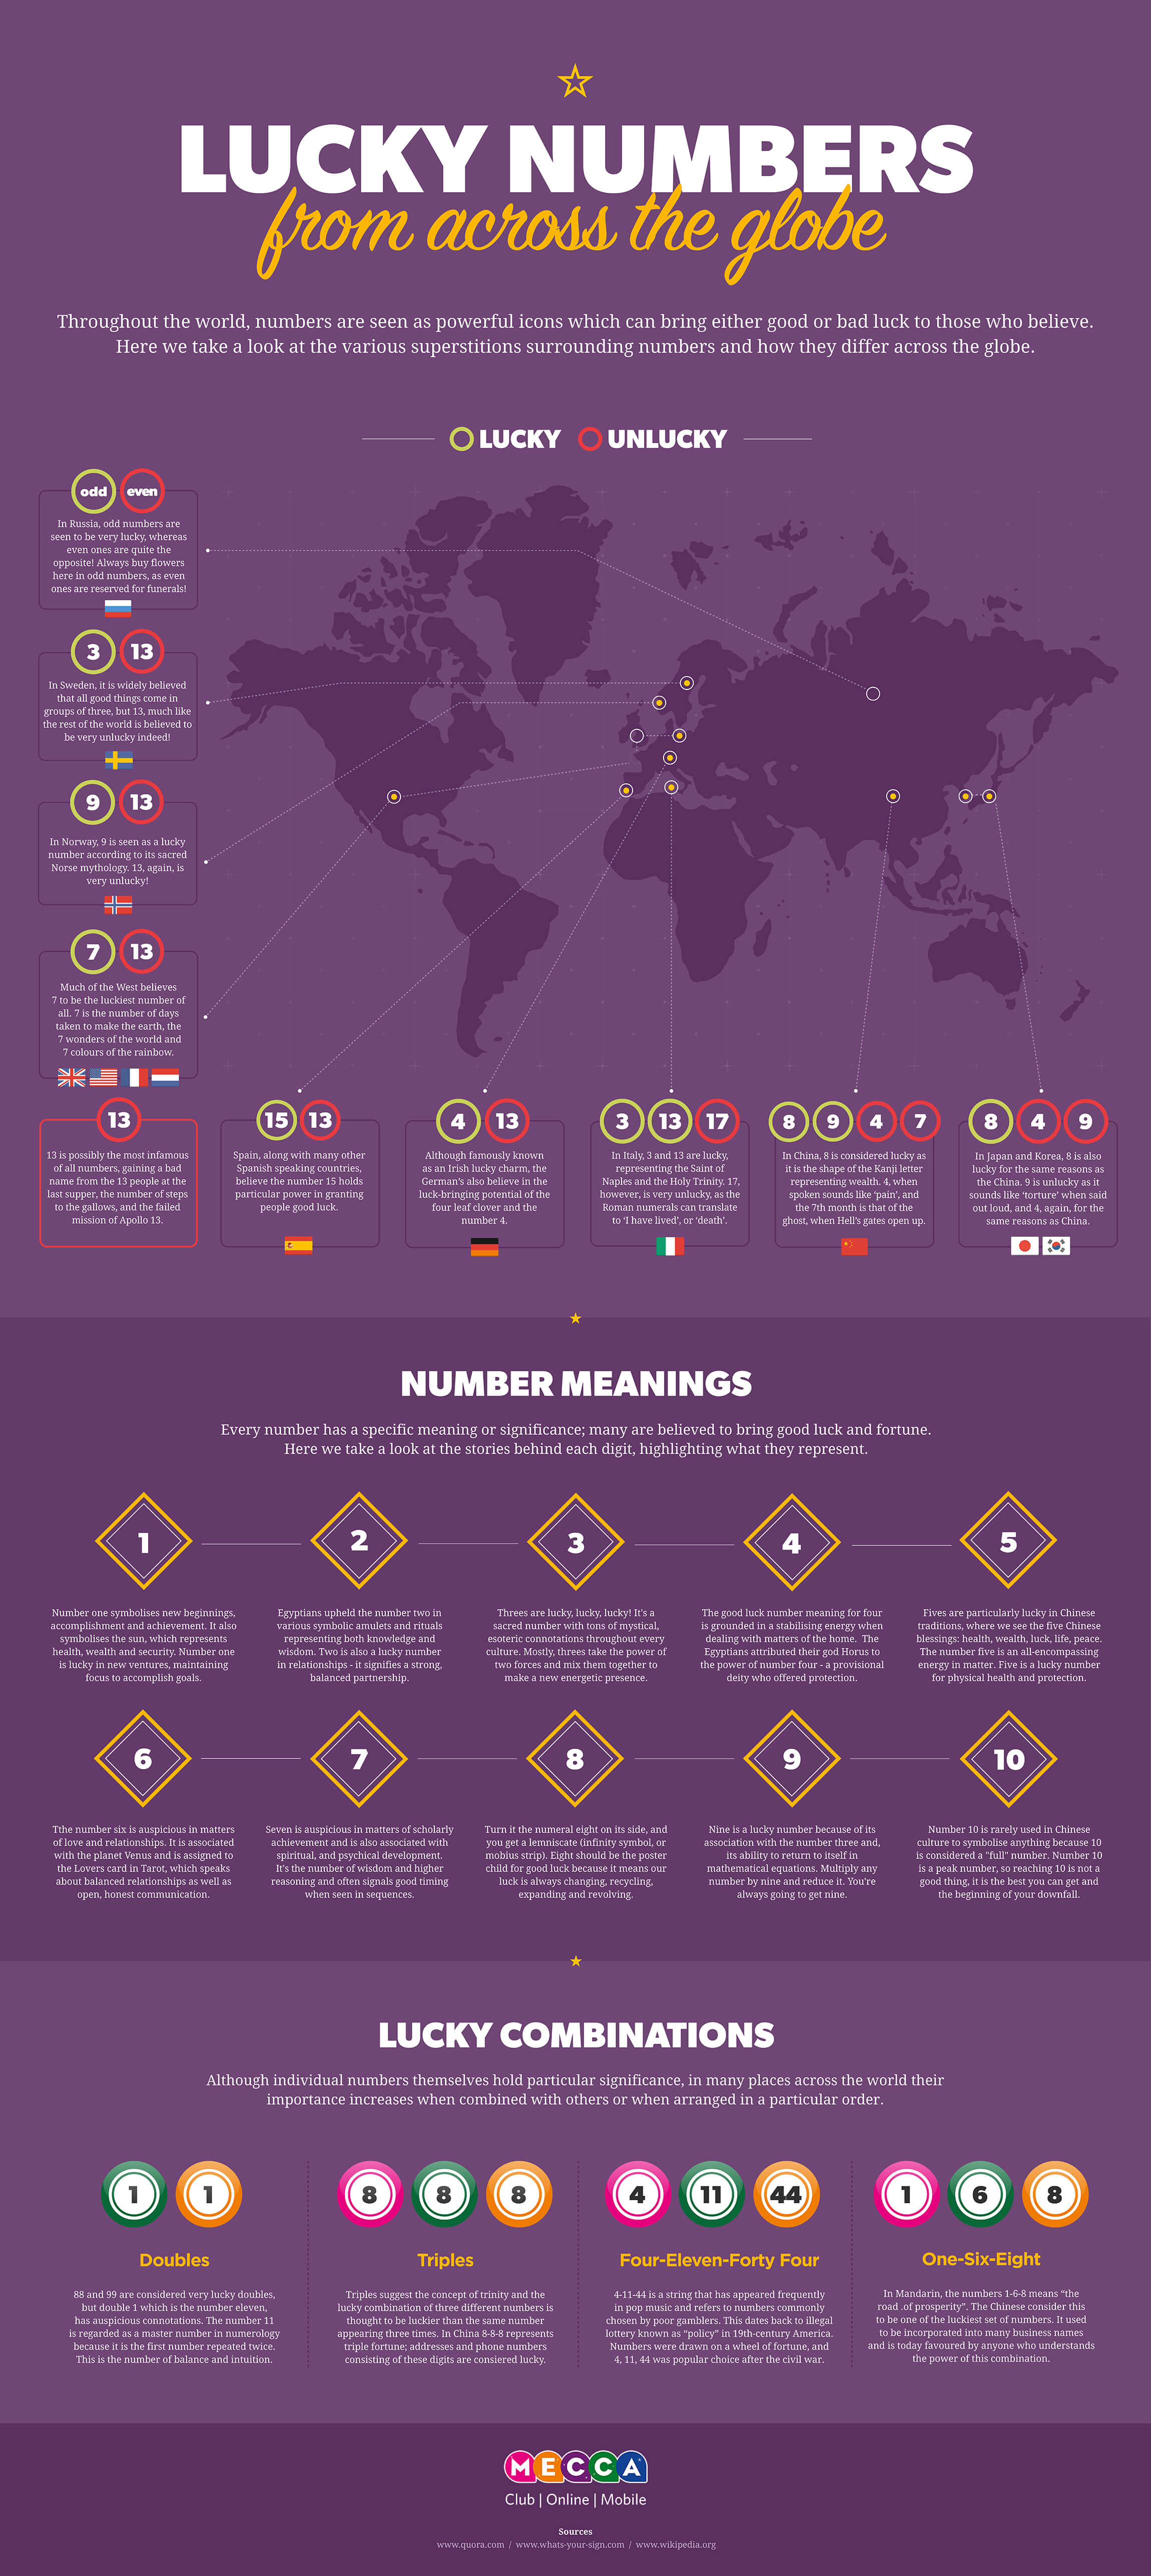 Lucky numbers from across the globe - Mecca Blog